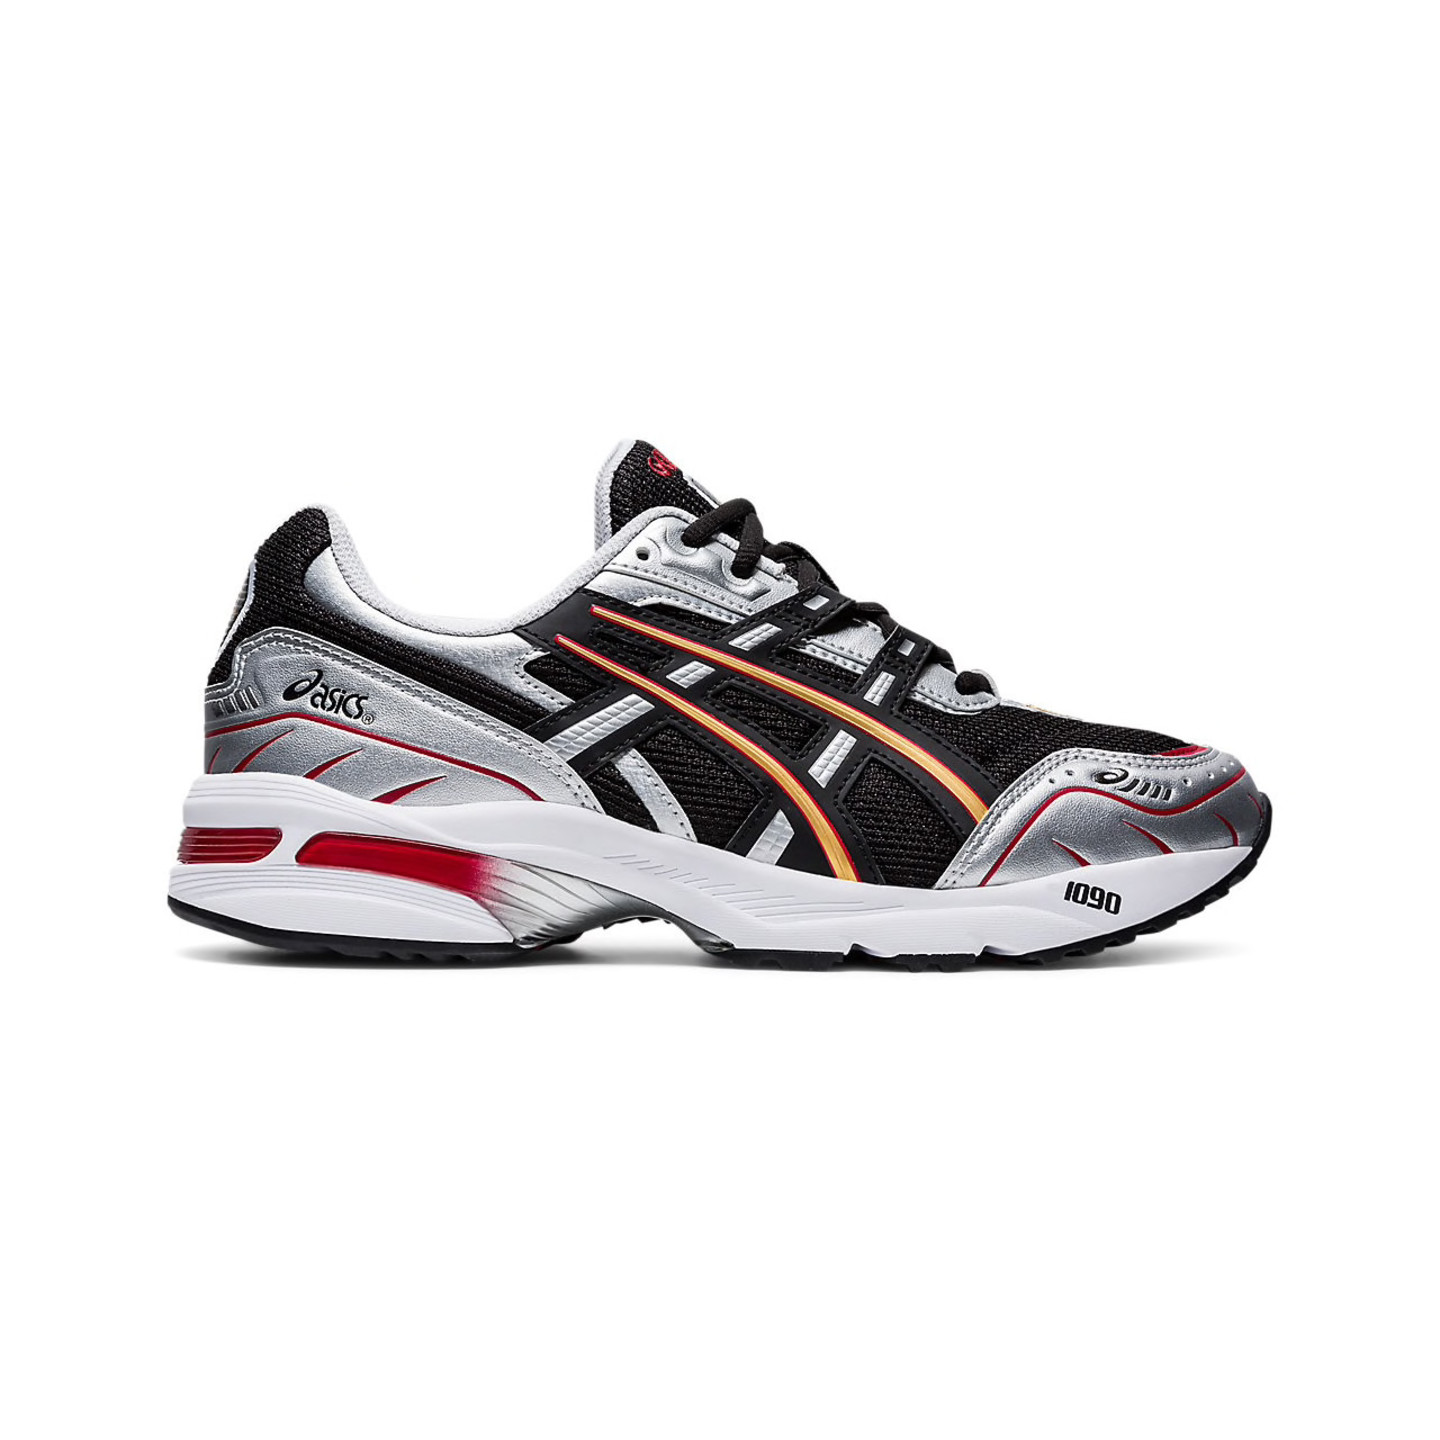 Asics GEL-1090 Black / Metallic Silver / Pure Gold / Atomic Red 1021A275-003